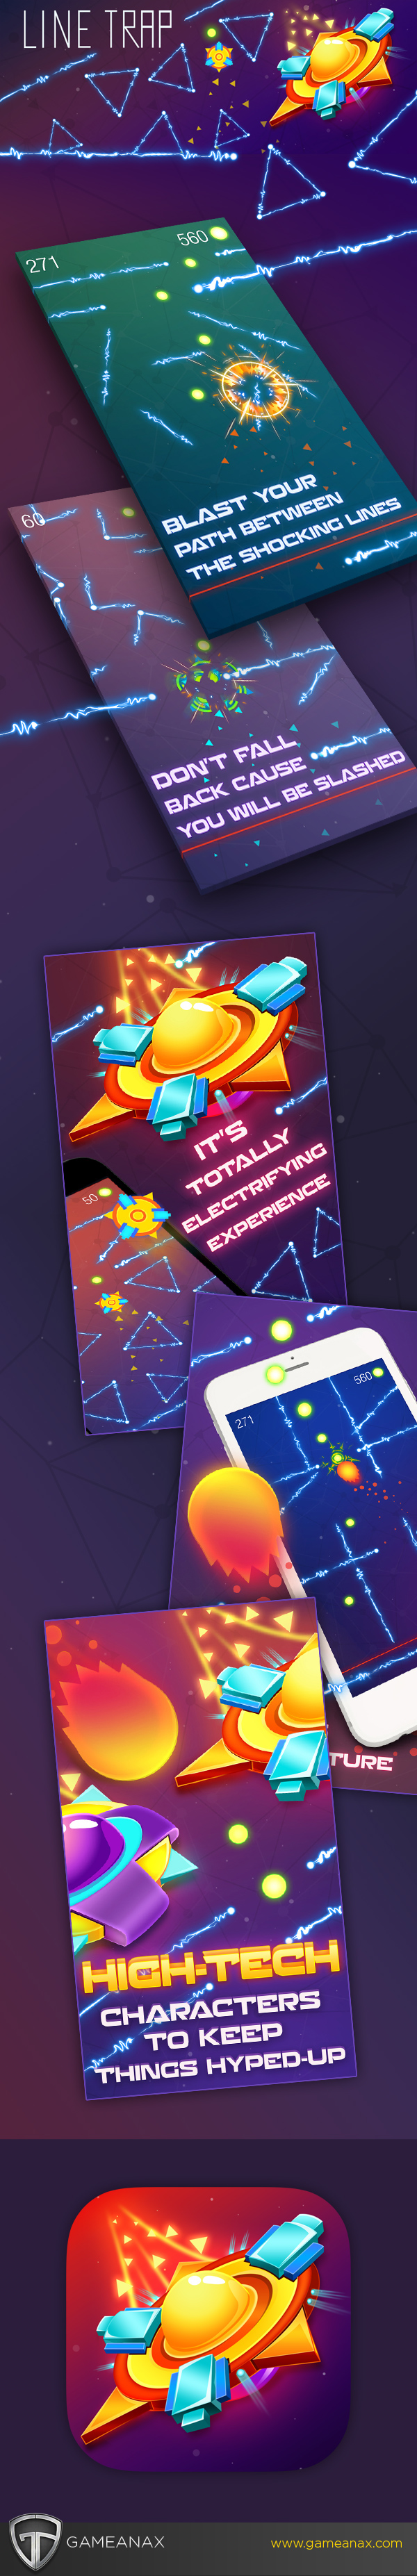 UI ux gameplay gamedesign designs art ios android graphics mobile games